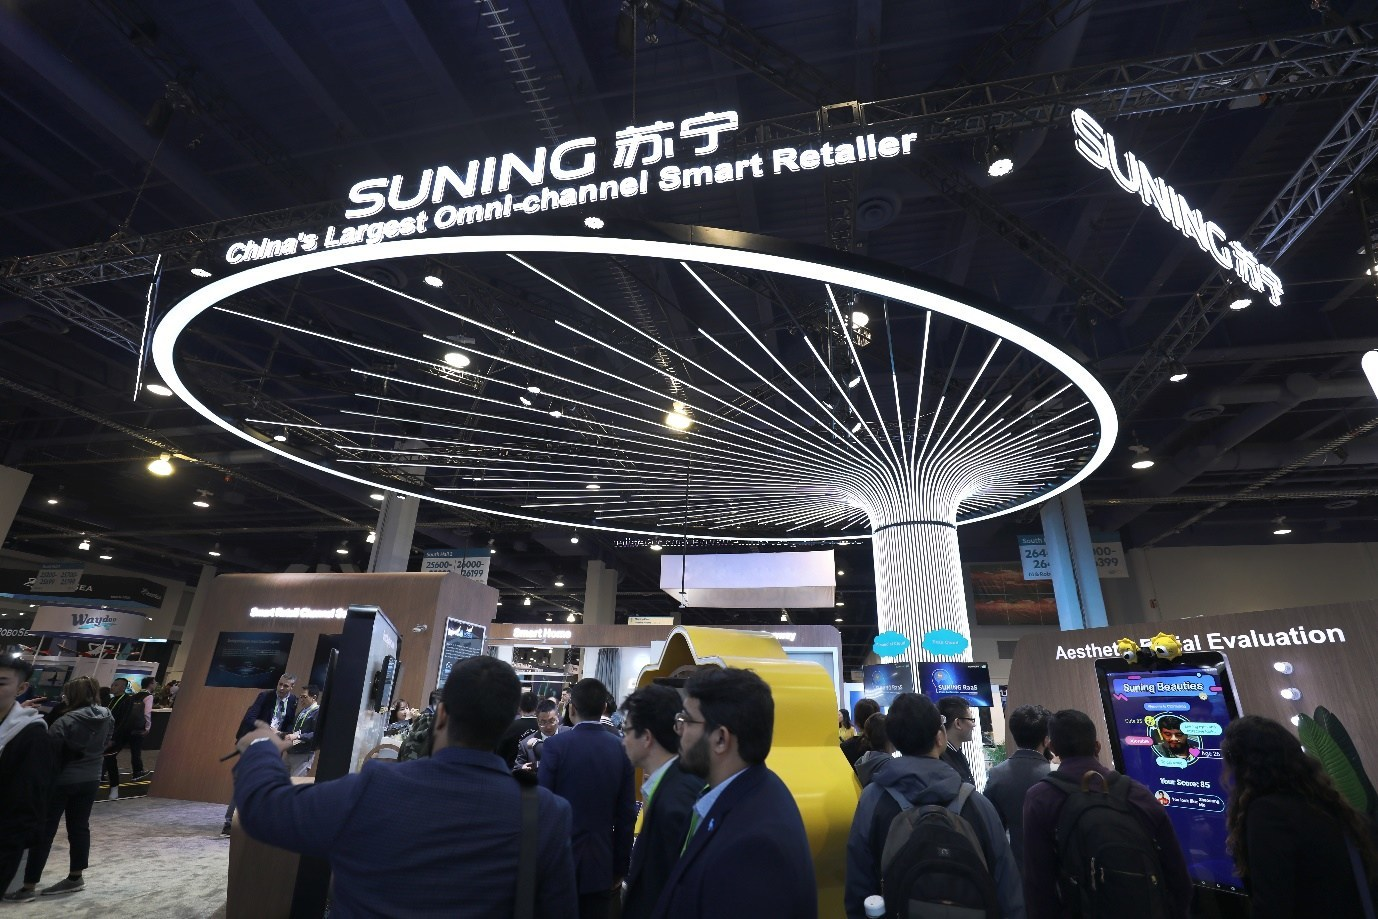 Suning's booth at CES 2019